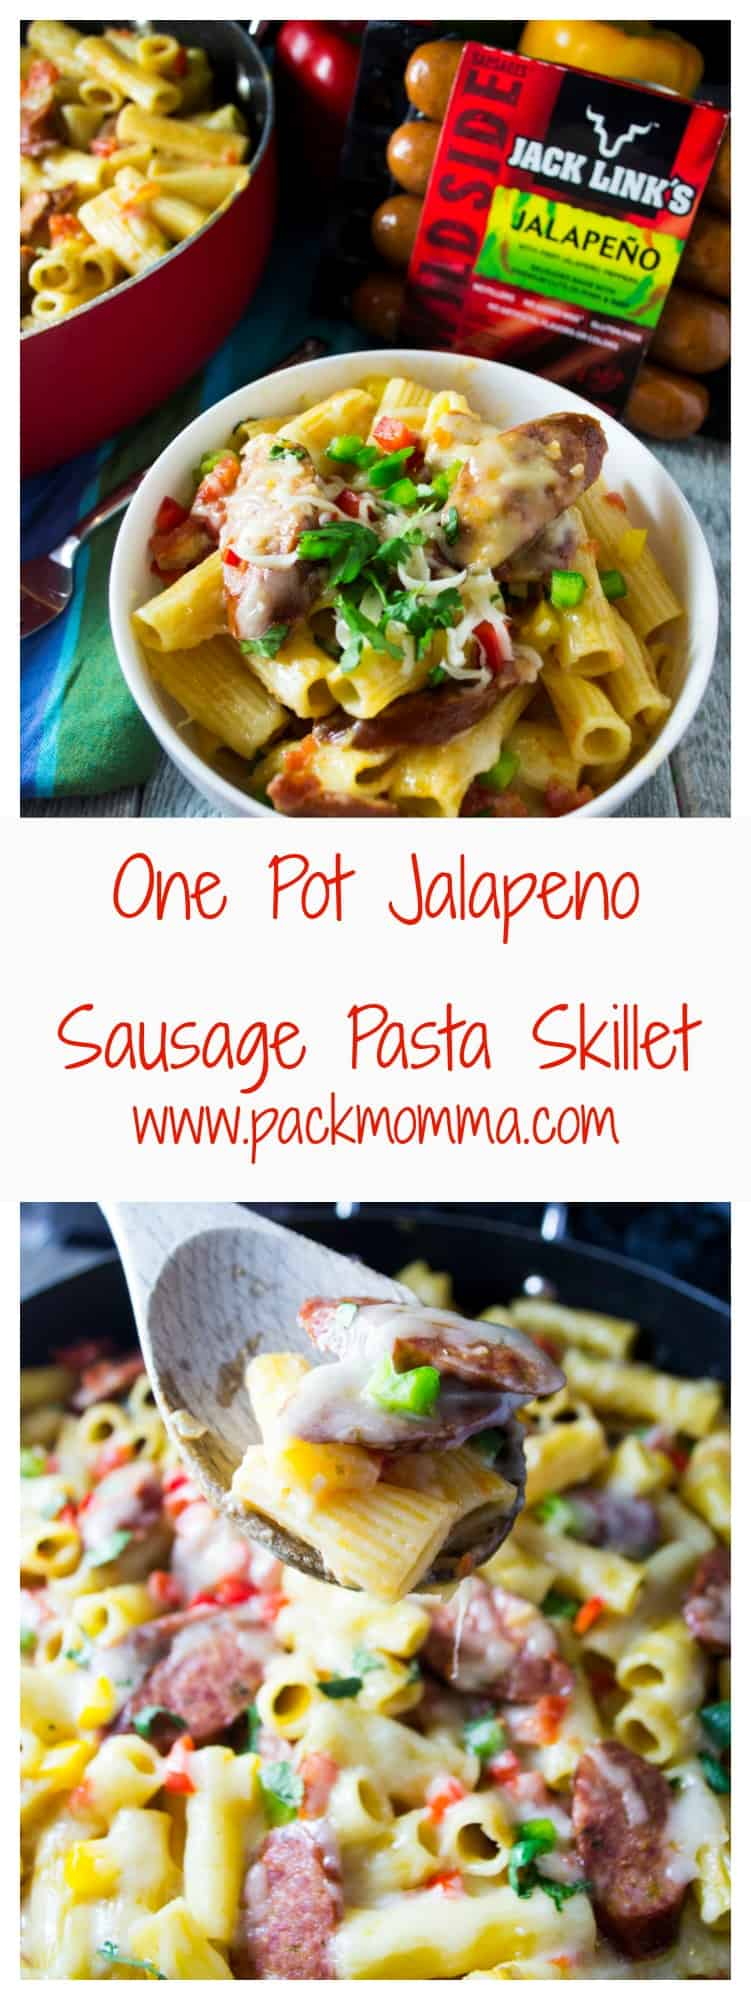 One Pot Jalapeno Sausage Pasta Skillet | Bring dinner to life with this bold, flavorful One Pot Jalapeno Sausage Pasta Skillet meal thanks to Jack Link's Wild Side Sausage. Done in 30 minutes and only one pot to clean!! | Pack Momma | https://www.packmomma.com